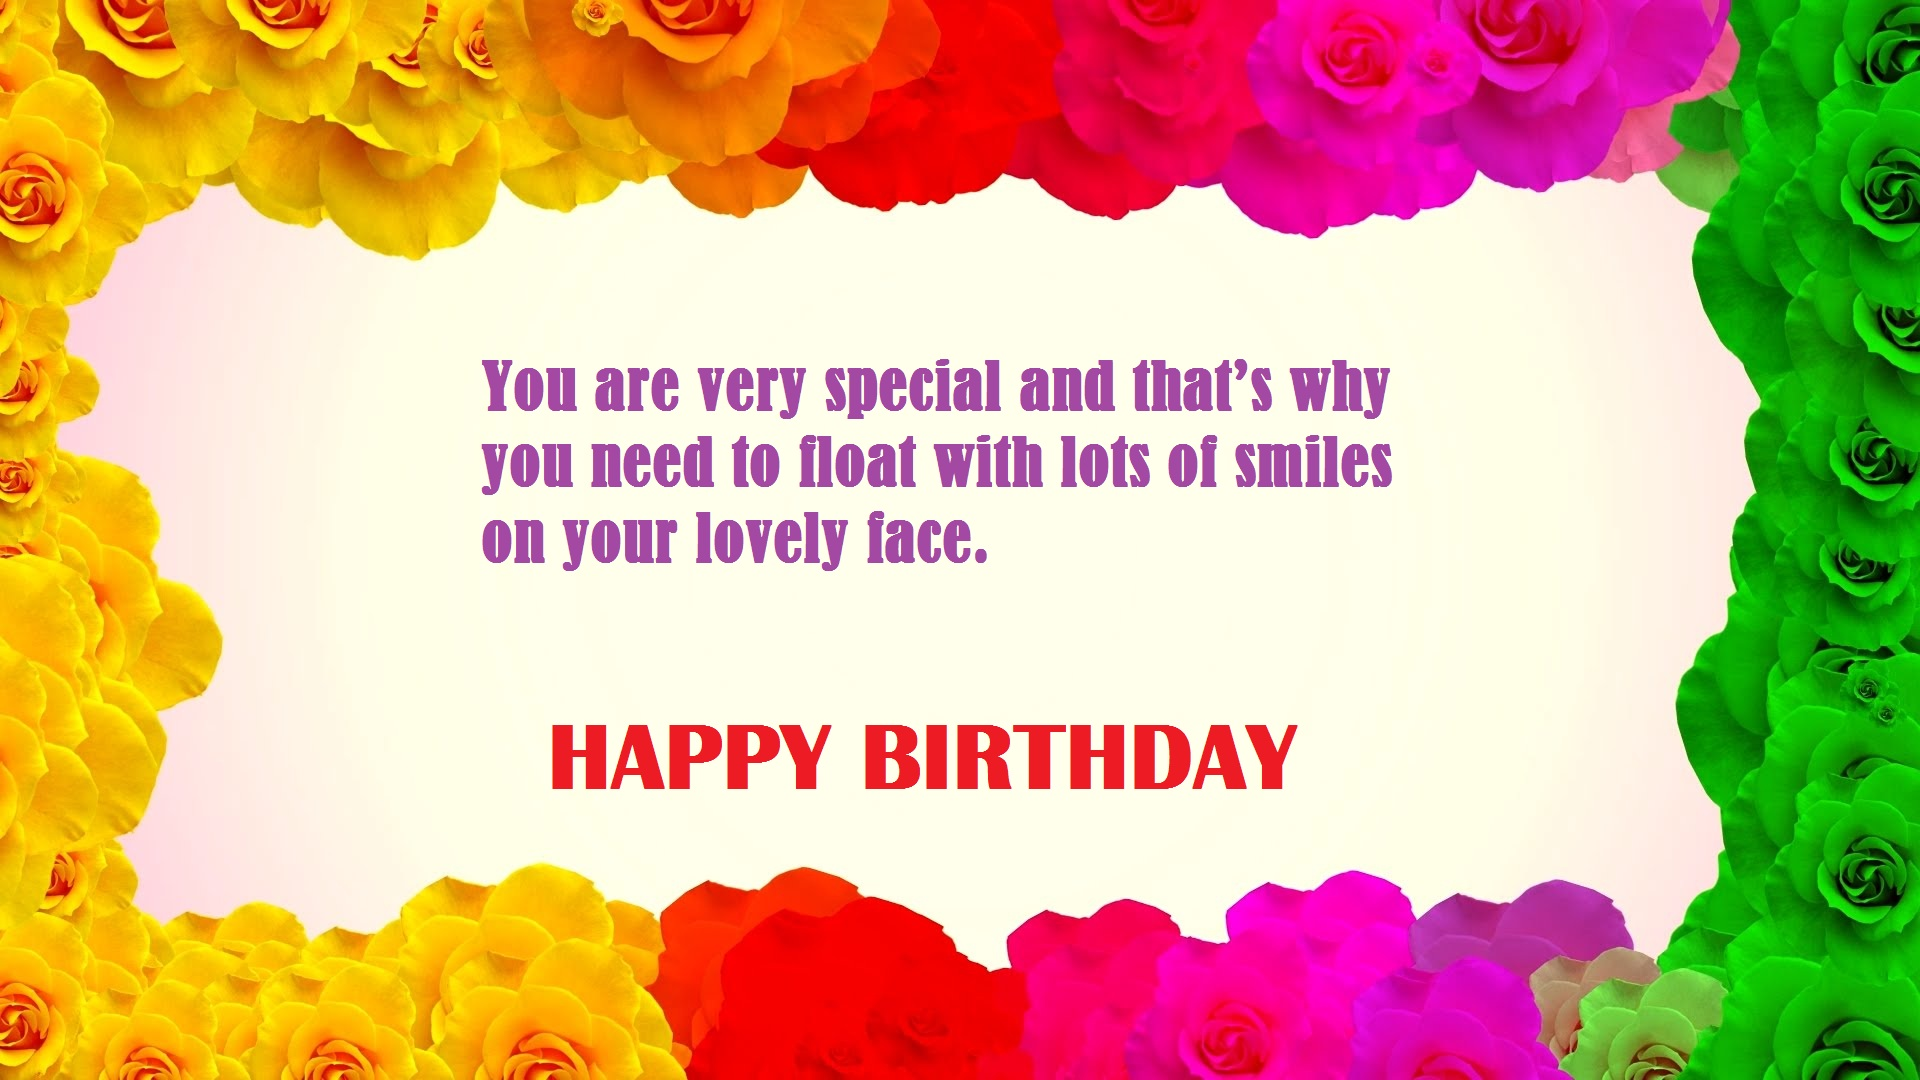 Loving-Birthday-Quotes-Pics-Images-Wallpapers